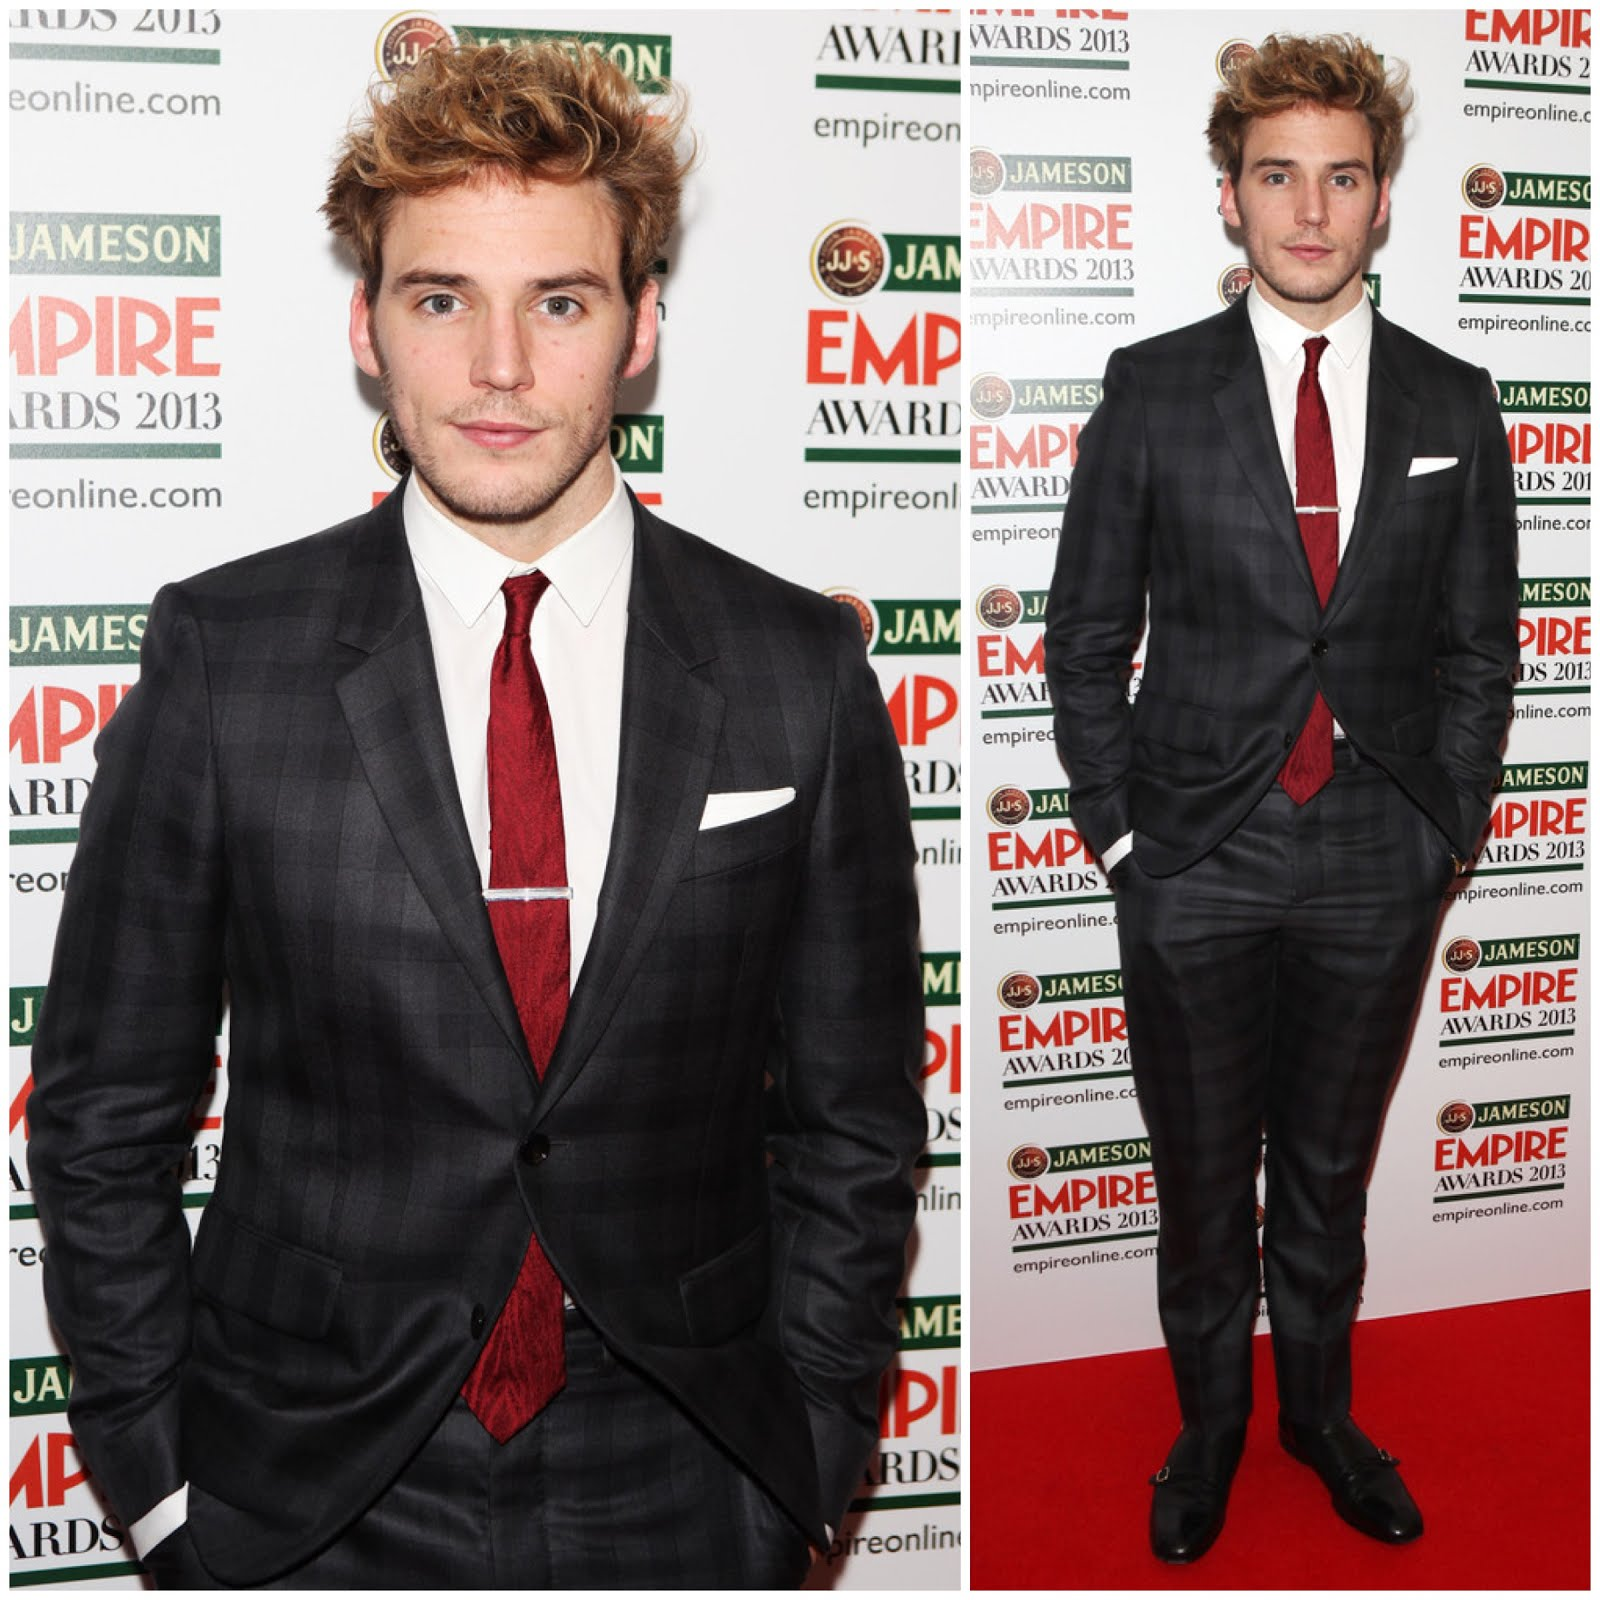 00O00 Menswear Blog Sam Claflin in Alexander McQueen SS13 charcoal grey checked suit and black double monk-strap shoes - Jameson Empire Awards 2013 at Grosvenor House Hotel, London